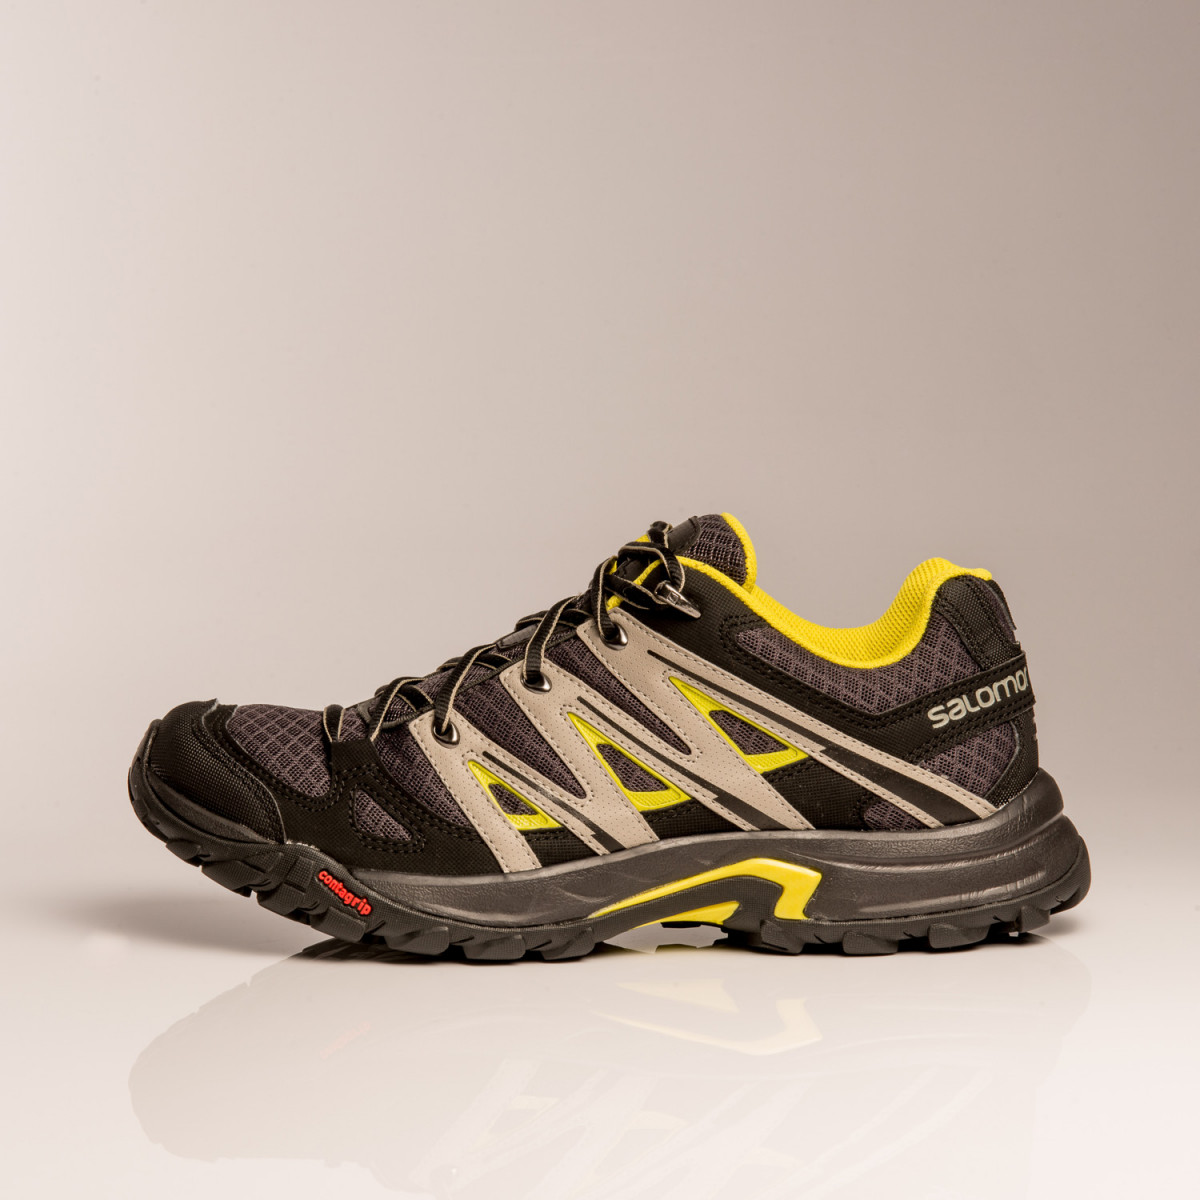 Zapatillas Salomon Eskape Aero